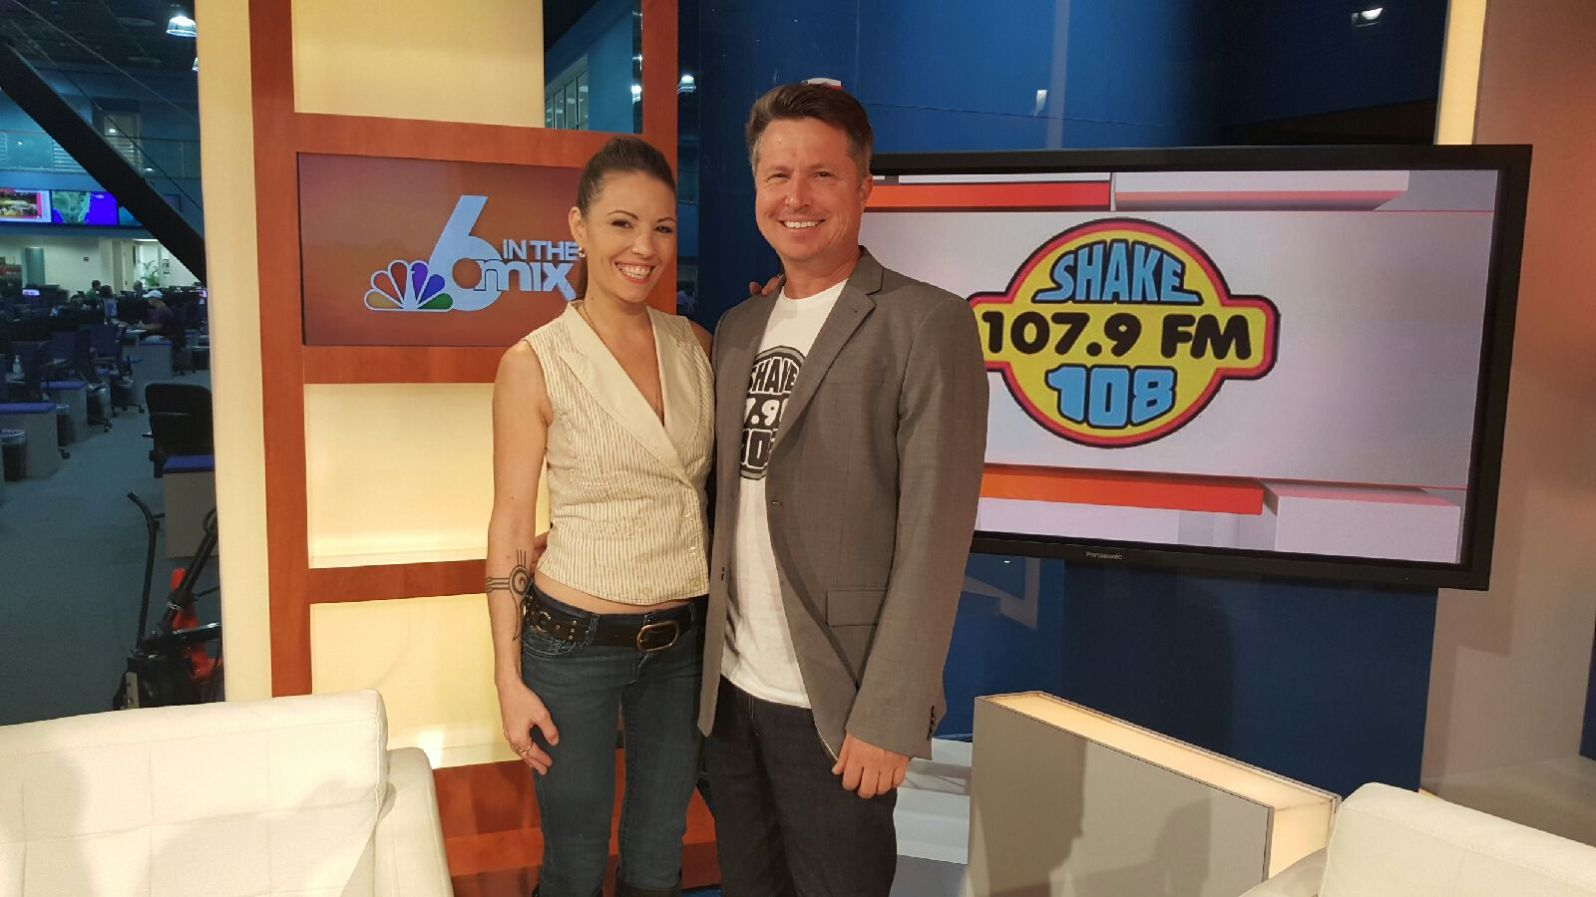 Shake 108's Aimee Beah Moore and Freddy Stebbins at NBC's 6 in The Mix.